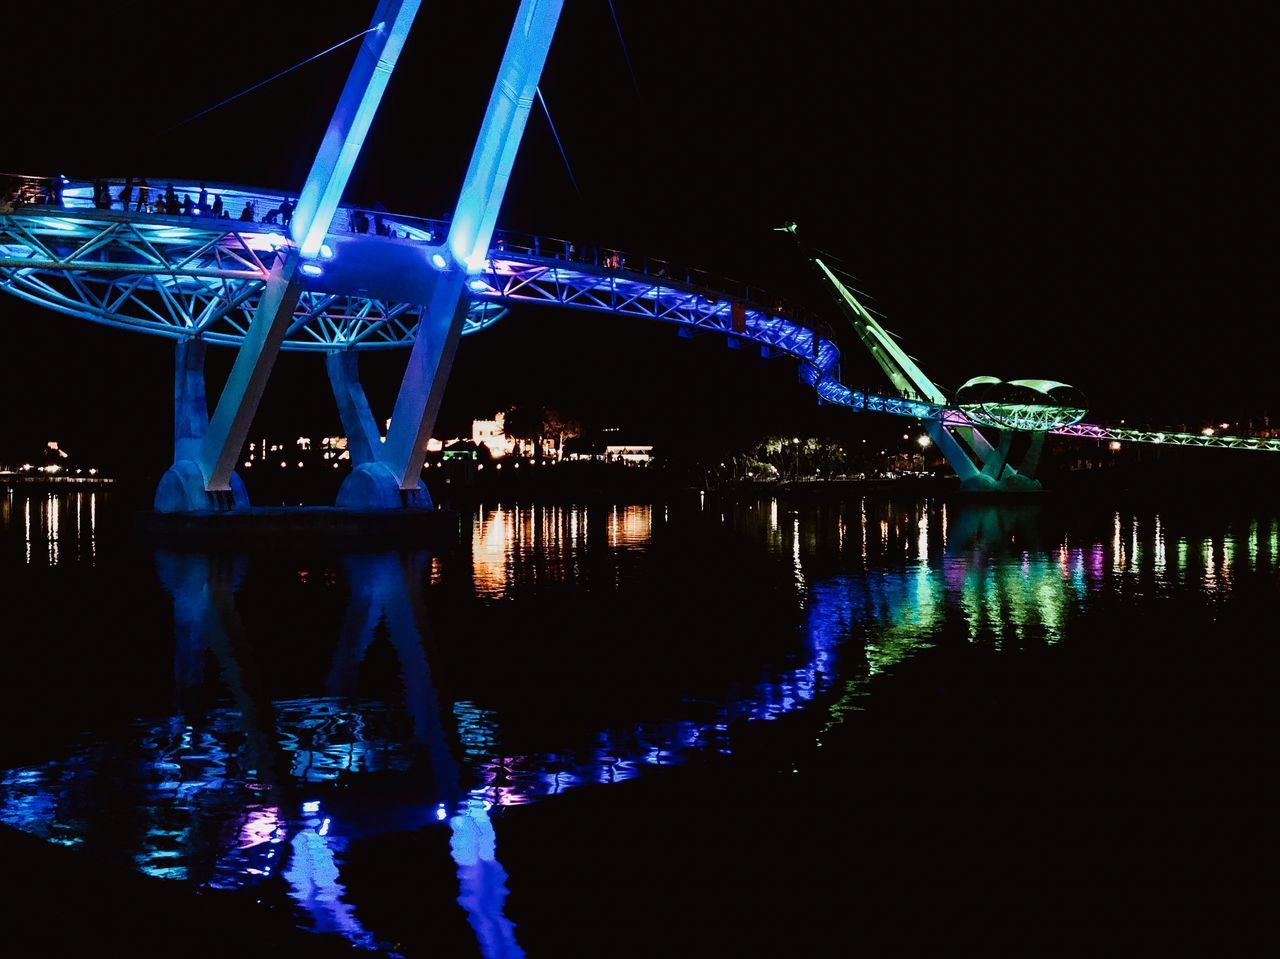 night, illuminated, water, architecture, connection, bridge, reflection, built structure, river, bridge - man made structure, waterfront, sky, no people, nature, transportation, travel destinations, lighting equipment, outdoors, nightlife